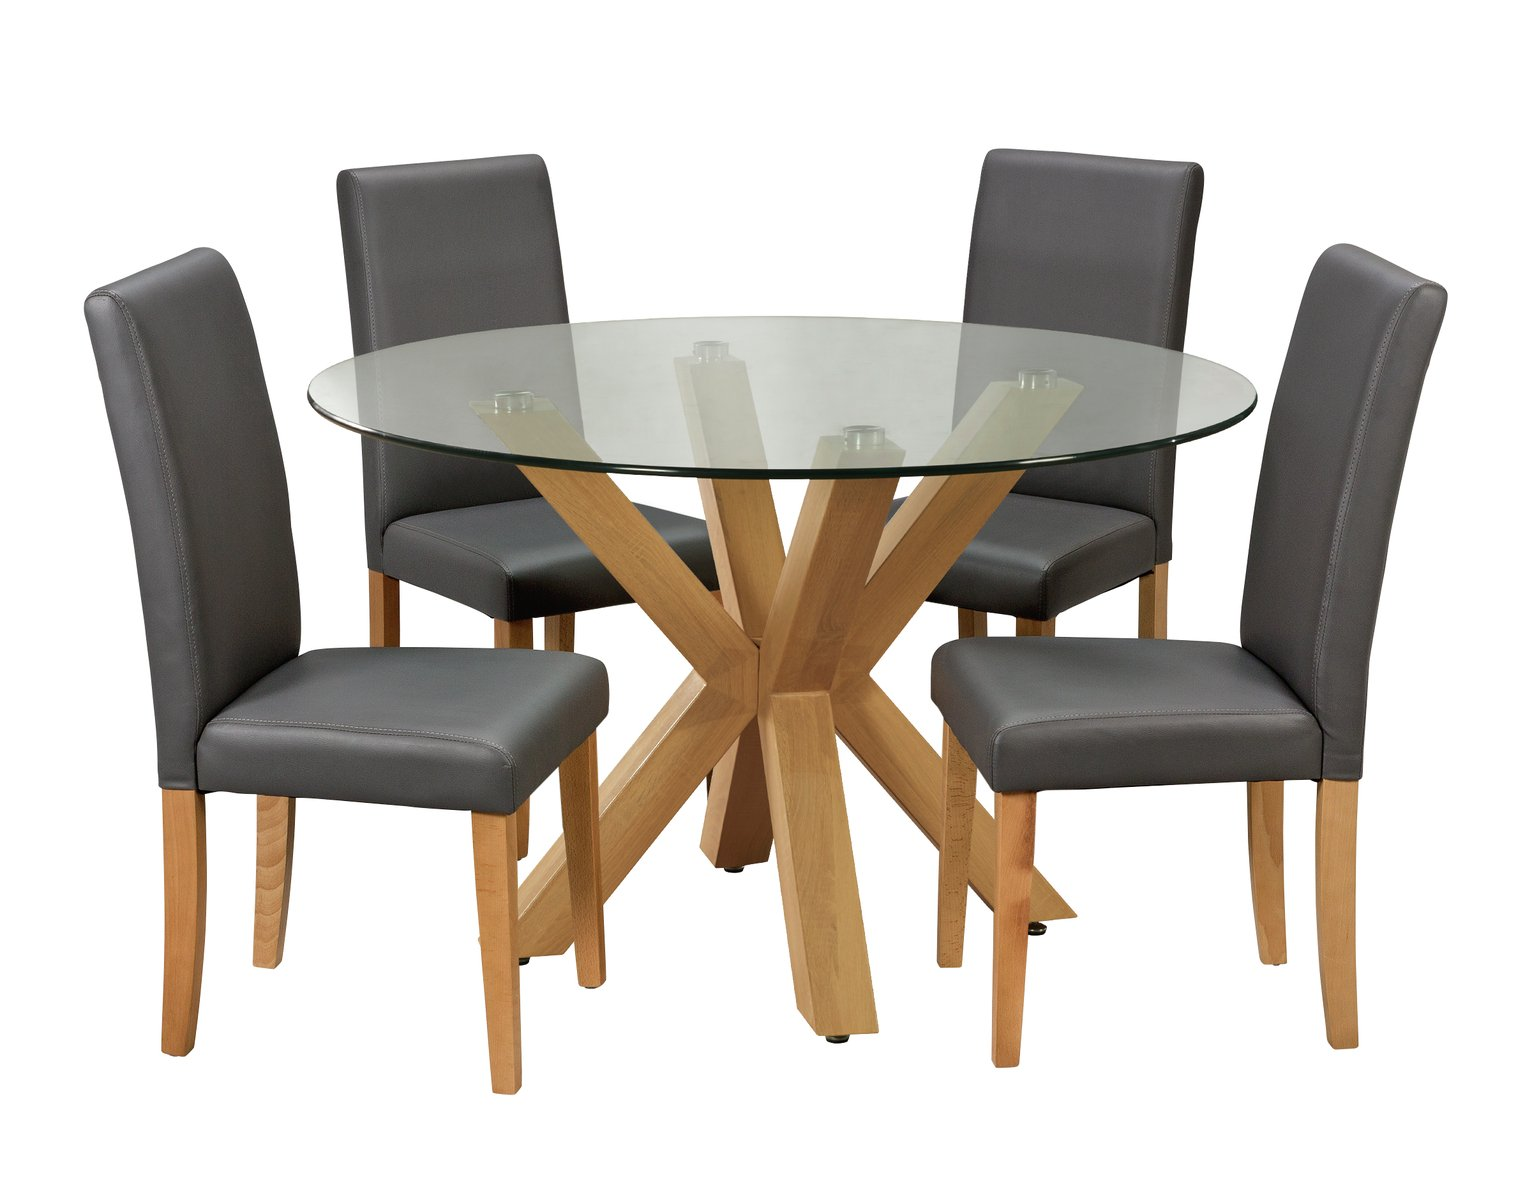 Delicieux Buy Argos Home Alden Glass Dining Table U0026 4 Charcoal Chairs | Dining Table  And Chair Sets | Argos